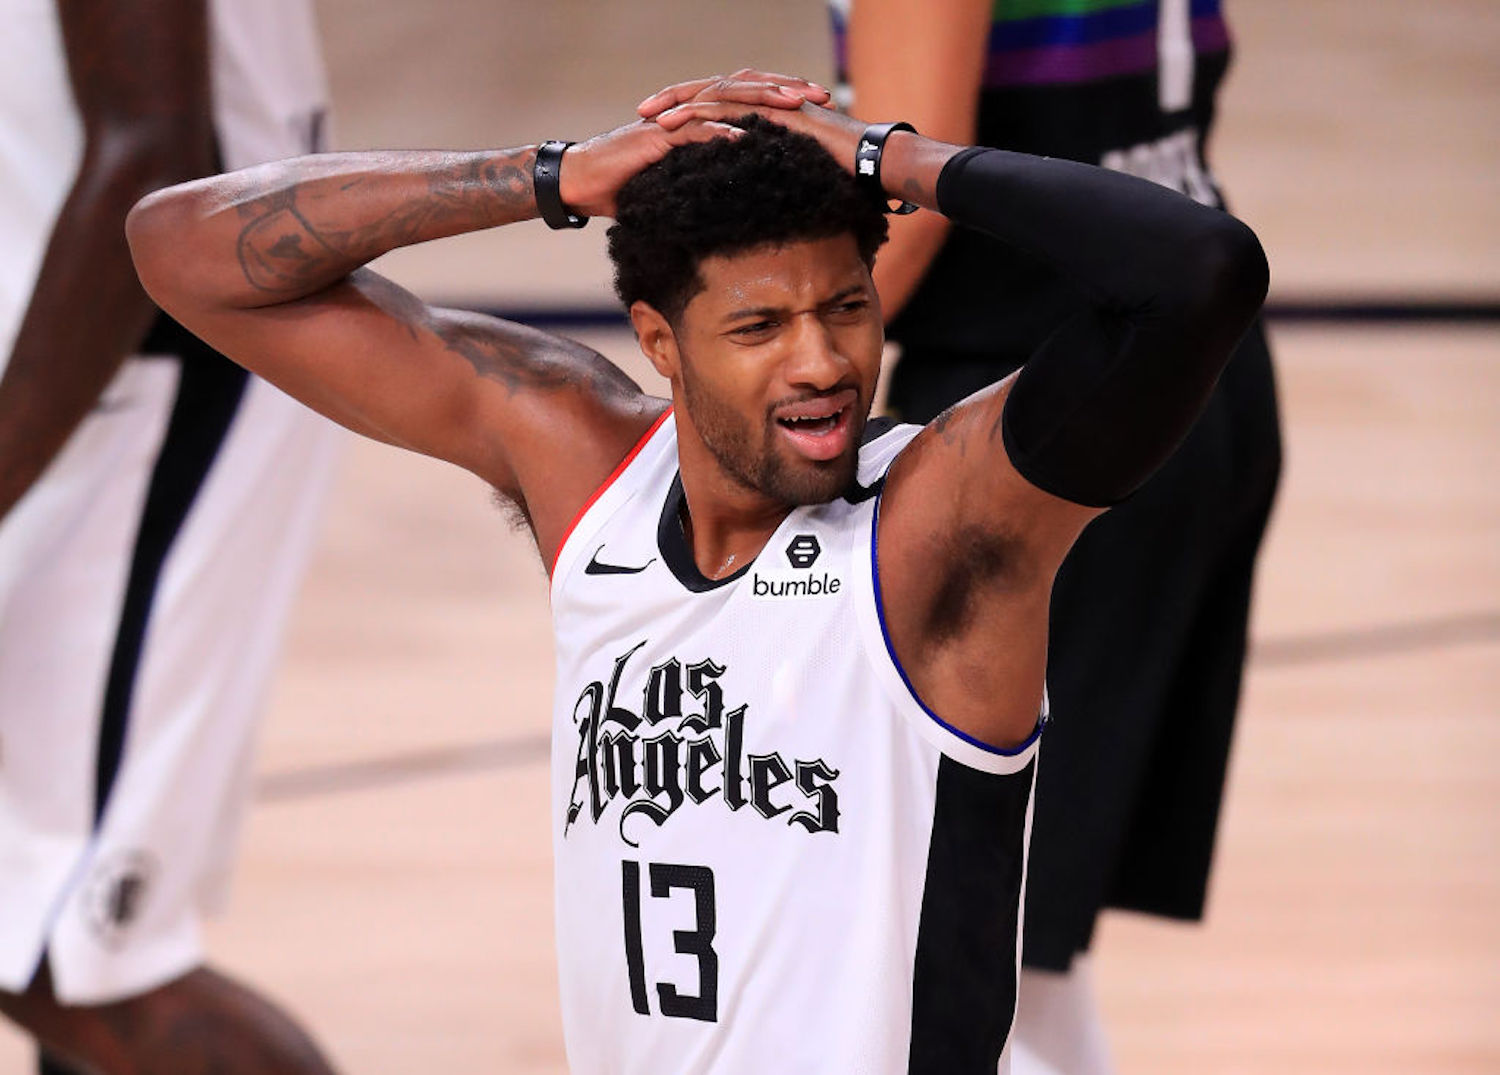 When the Clippers mortgaged their future for four years of Paul George, the team didn't expect the season so end the way it did.